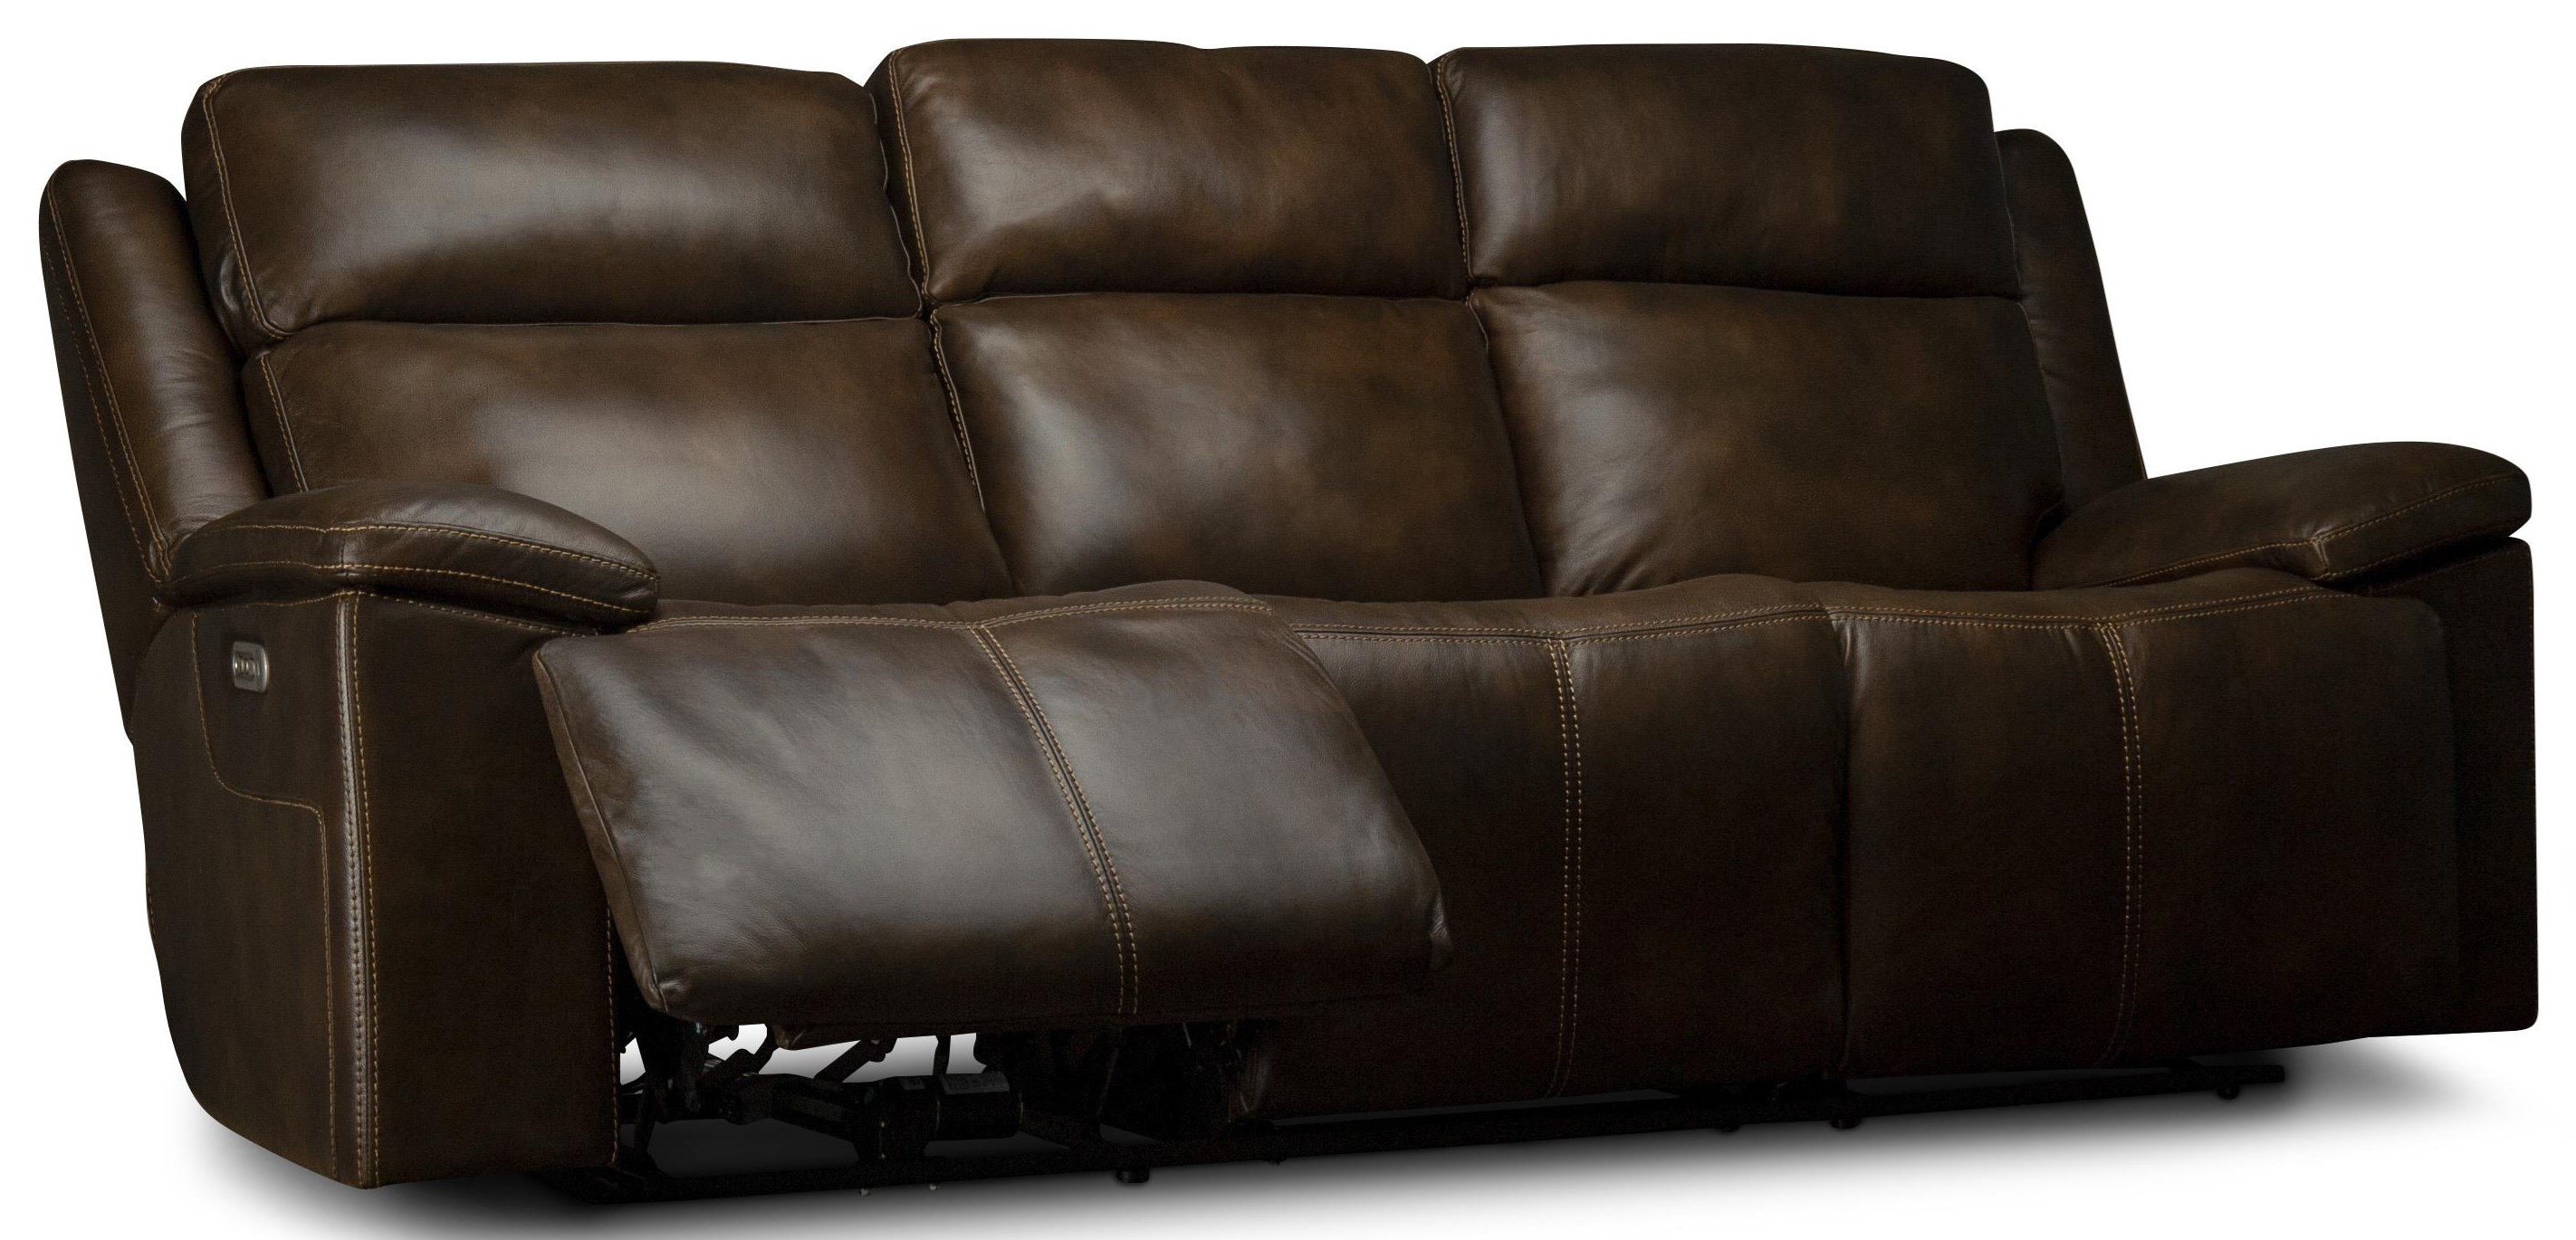 Calista Calista Power Leather Match Sofa by Flexsteel Wynwood Collection at Morris Home